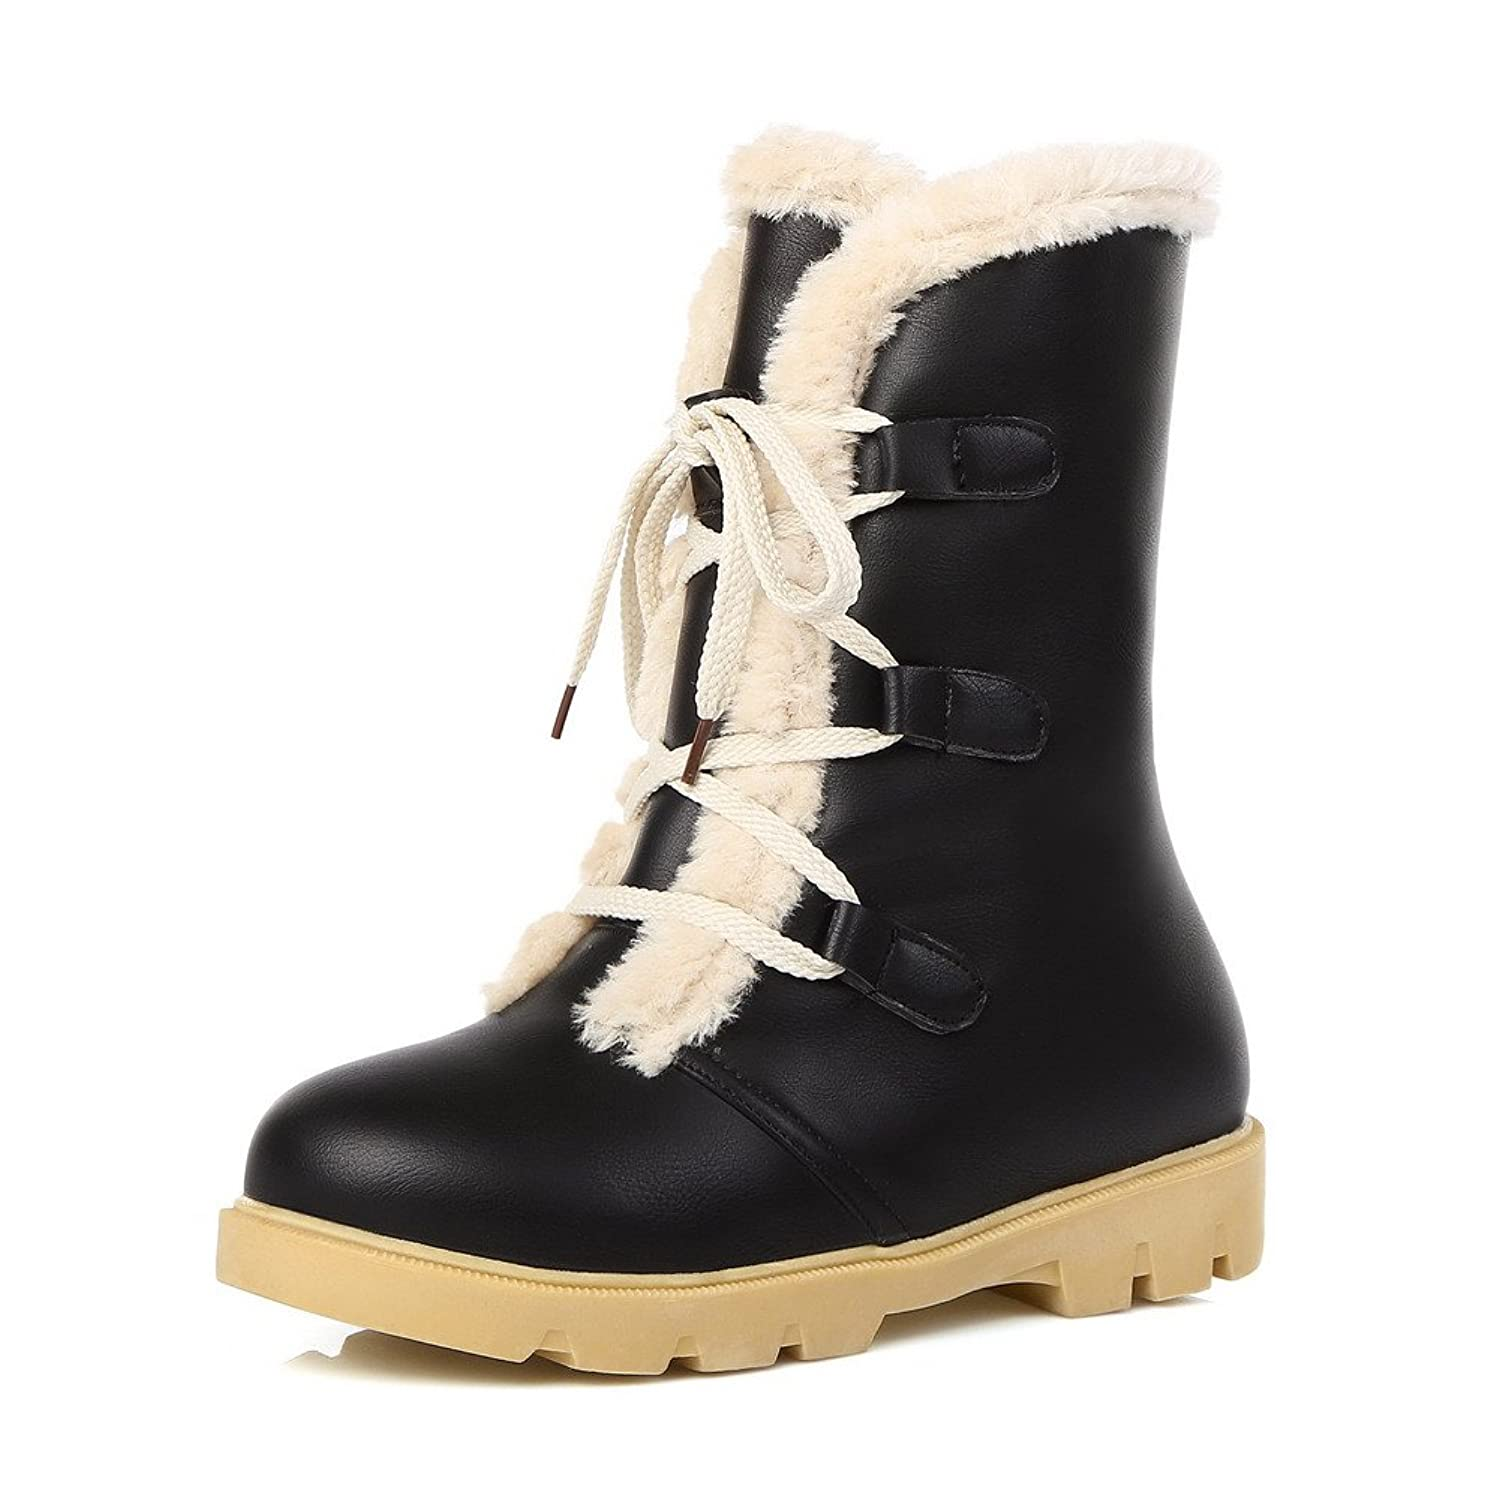 AmoonyFashion Women's Low-top Lace-up Soft Material Low Heels Round Closed Toe Boots